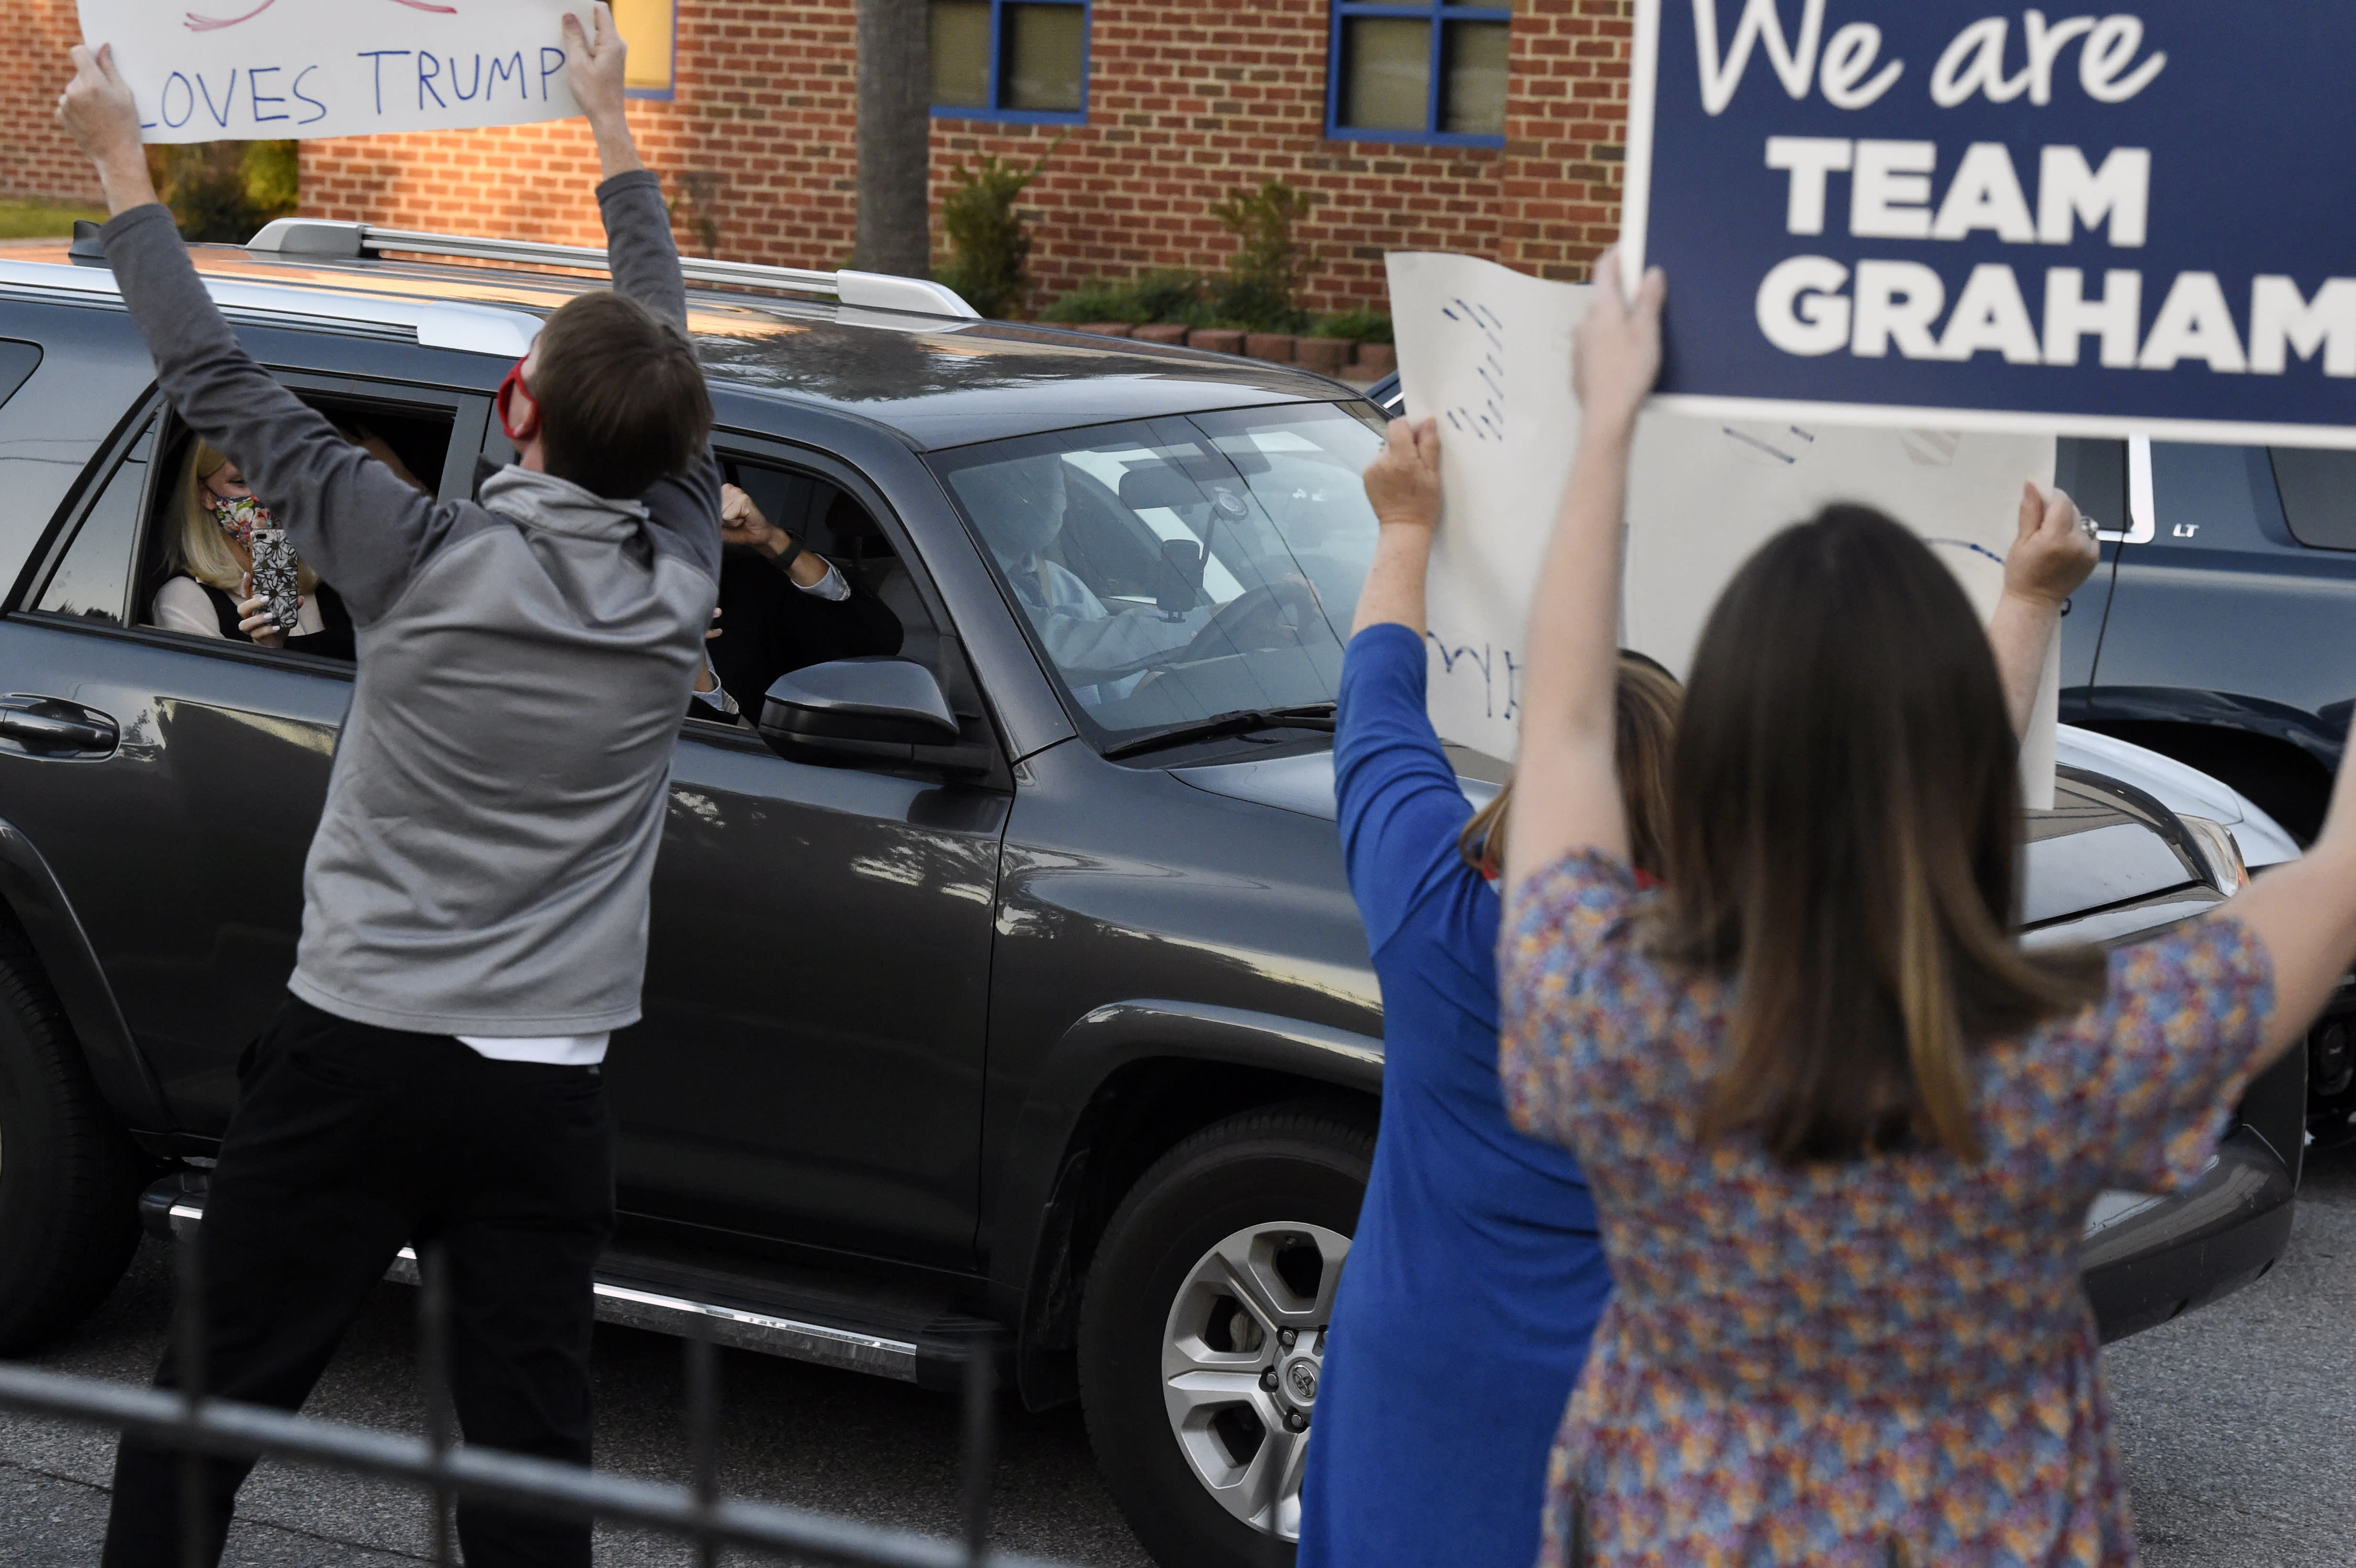 Supporters wave signs as U.S. Sen. Lindsey Graham arrives at the site of his first debate with Democratic challenger Jaime Harrison, Saturday, Oct. 3, 2020, at Allen University in Columbia, S.C. (AP Photo/Meg Kinnard)